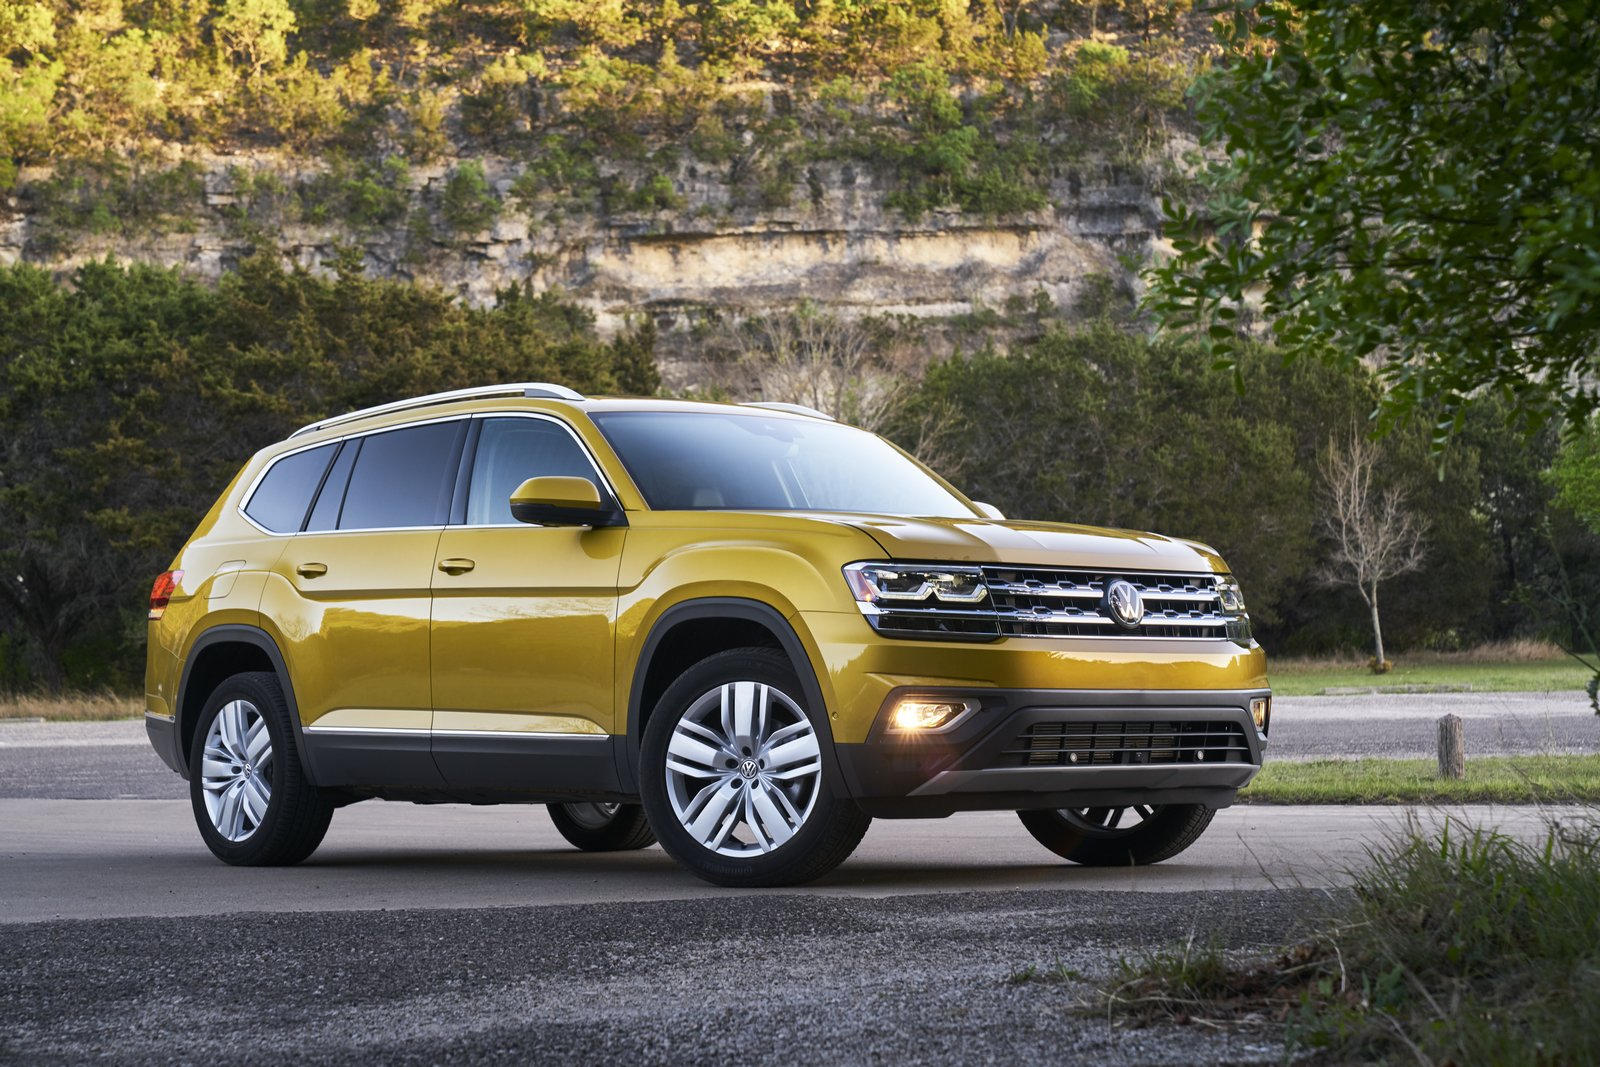 vw confirms plans for 19 crossovers globally carscoops. Black Bedroom Furniture Sets. Home Design Ideas